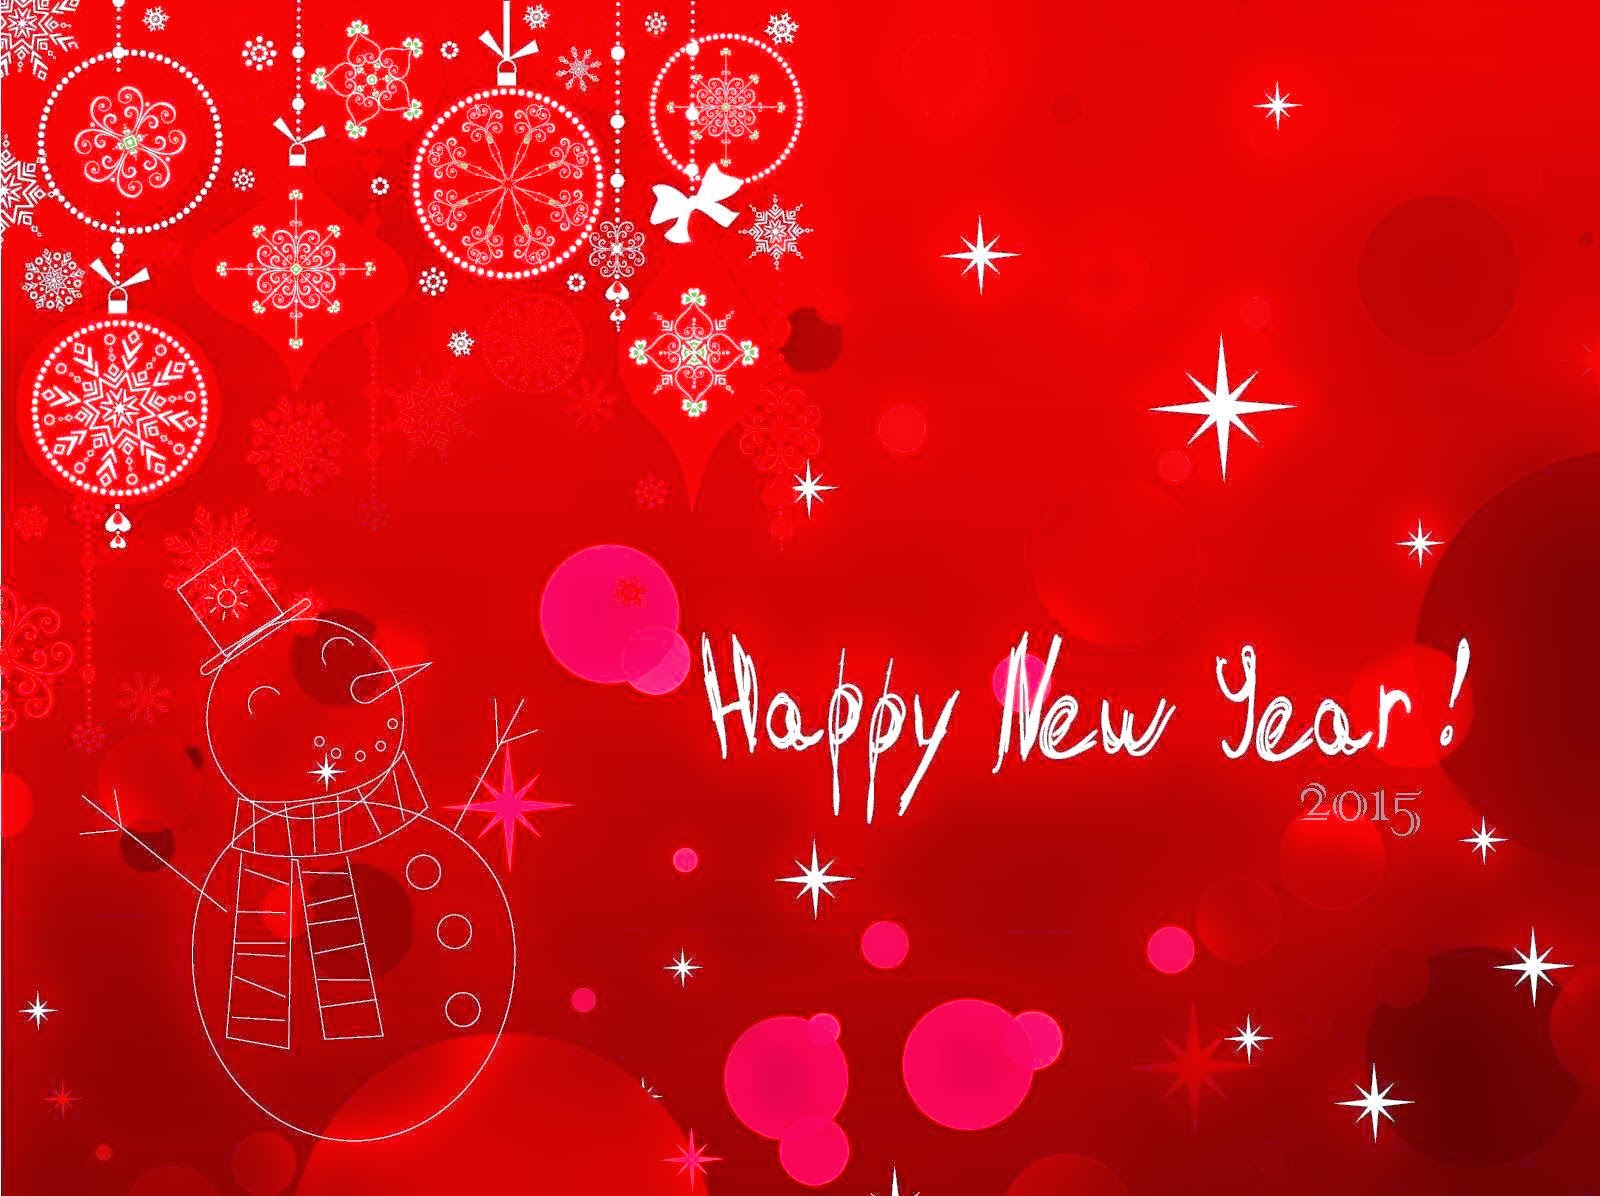 Snow Falling Red Art Happy New Year 2015 HD wallpapers free Download